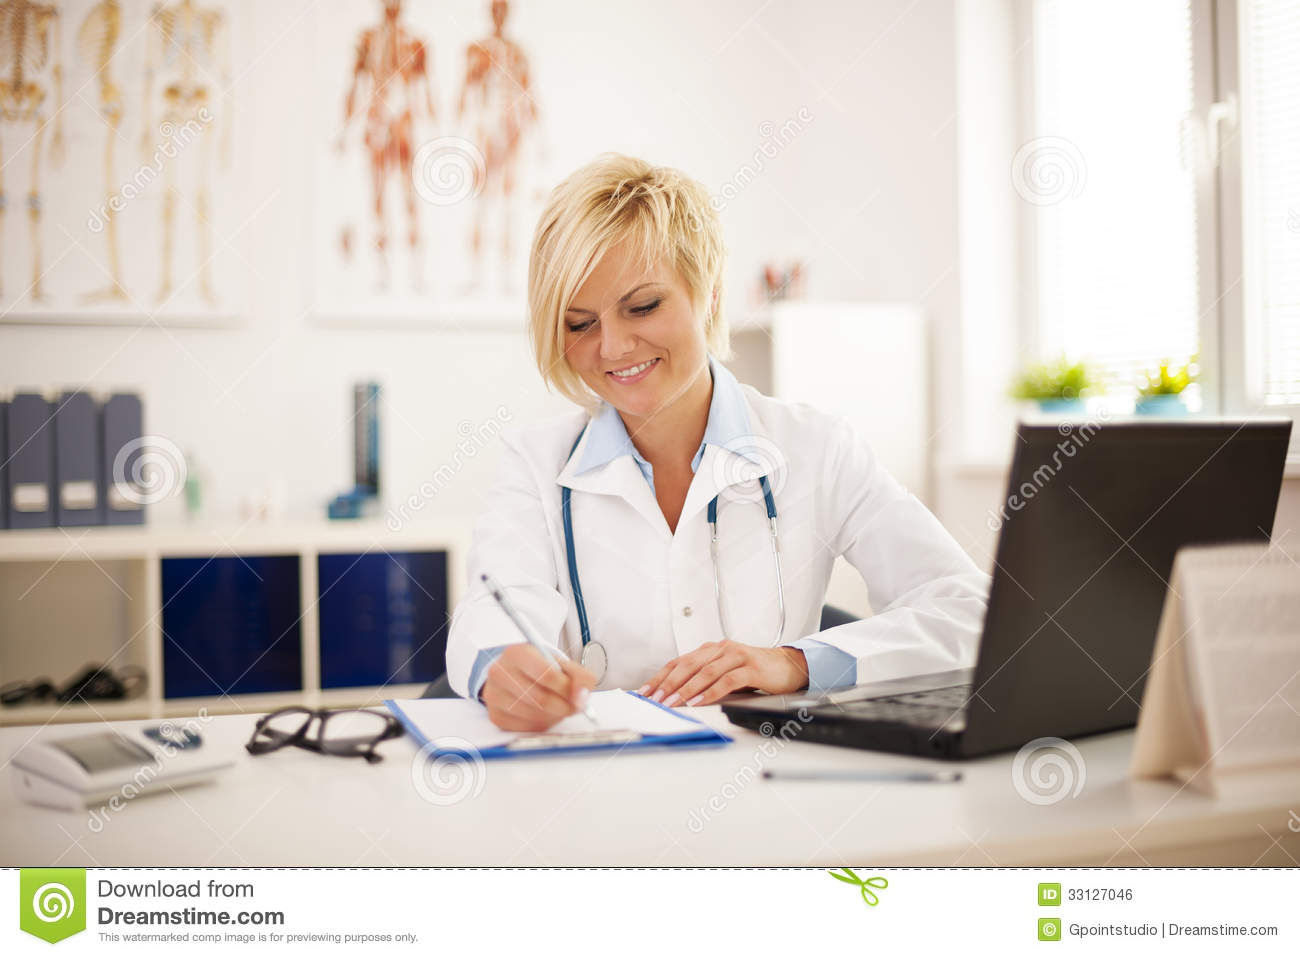 Busy Doctor At Her Office Royalty Free Stock Image - Image ...